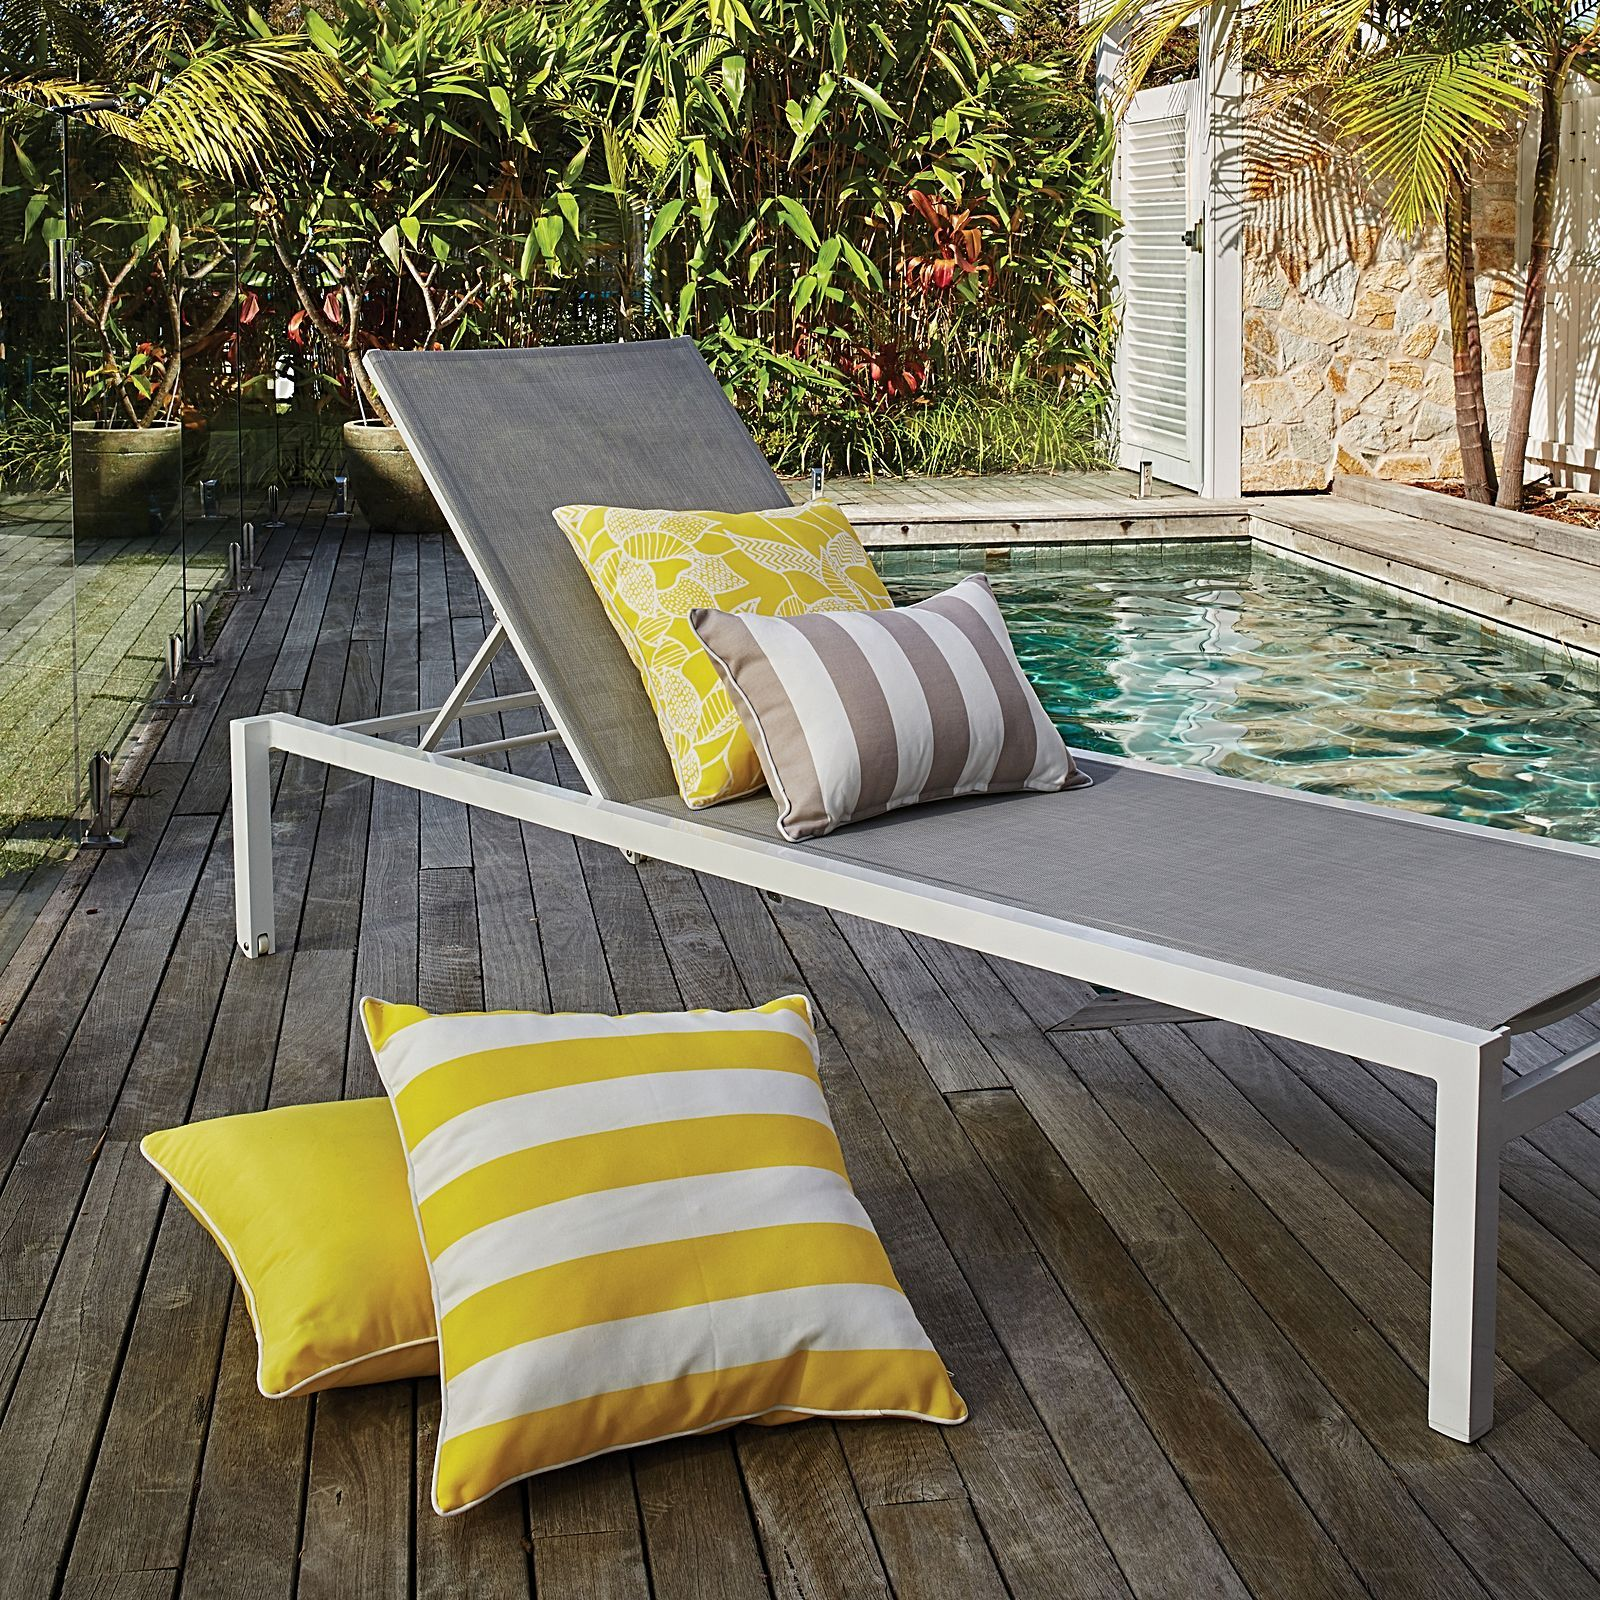 Riviera lily outdoor cushion by rapee zanui furniture repair west palm beach